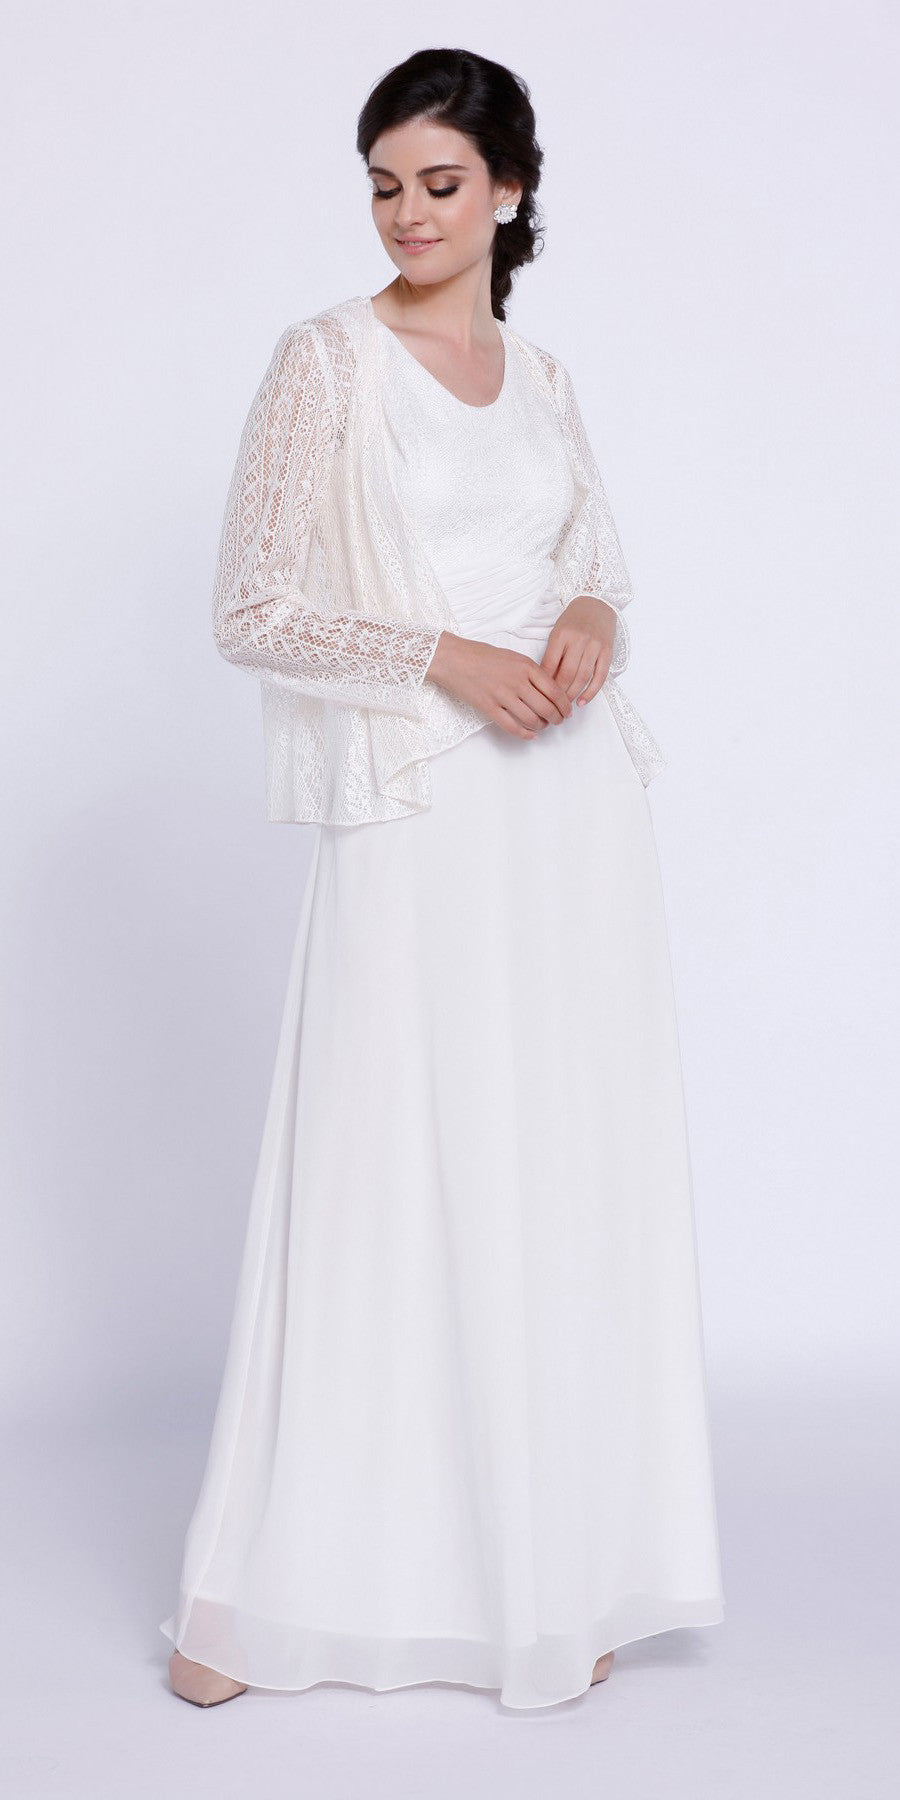 Long Ivory Dress Scoop Neck A-Line Sleeveless with Lace Jacket